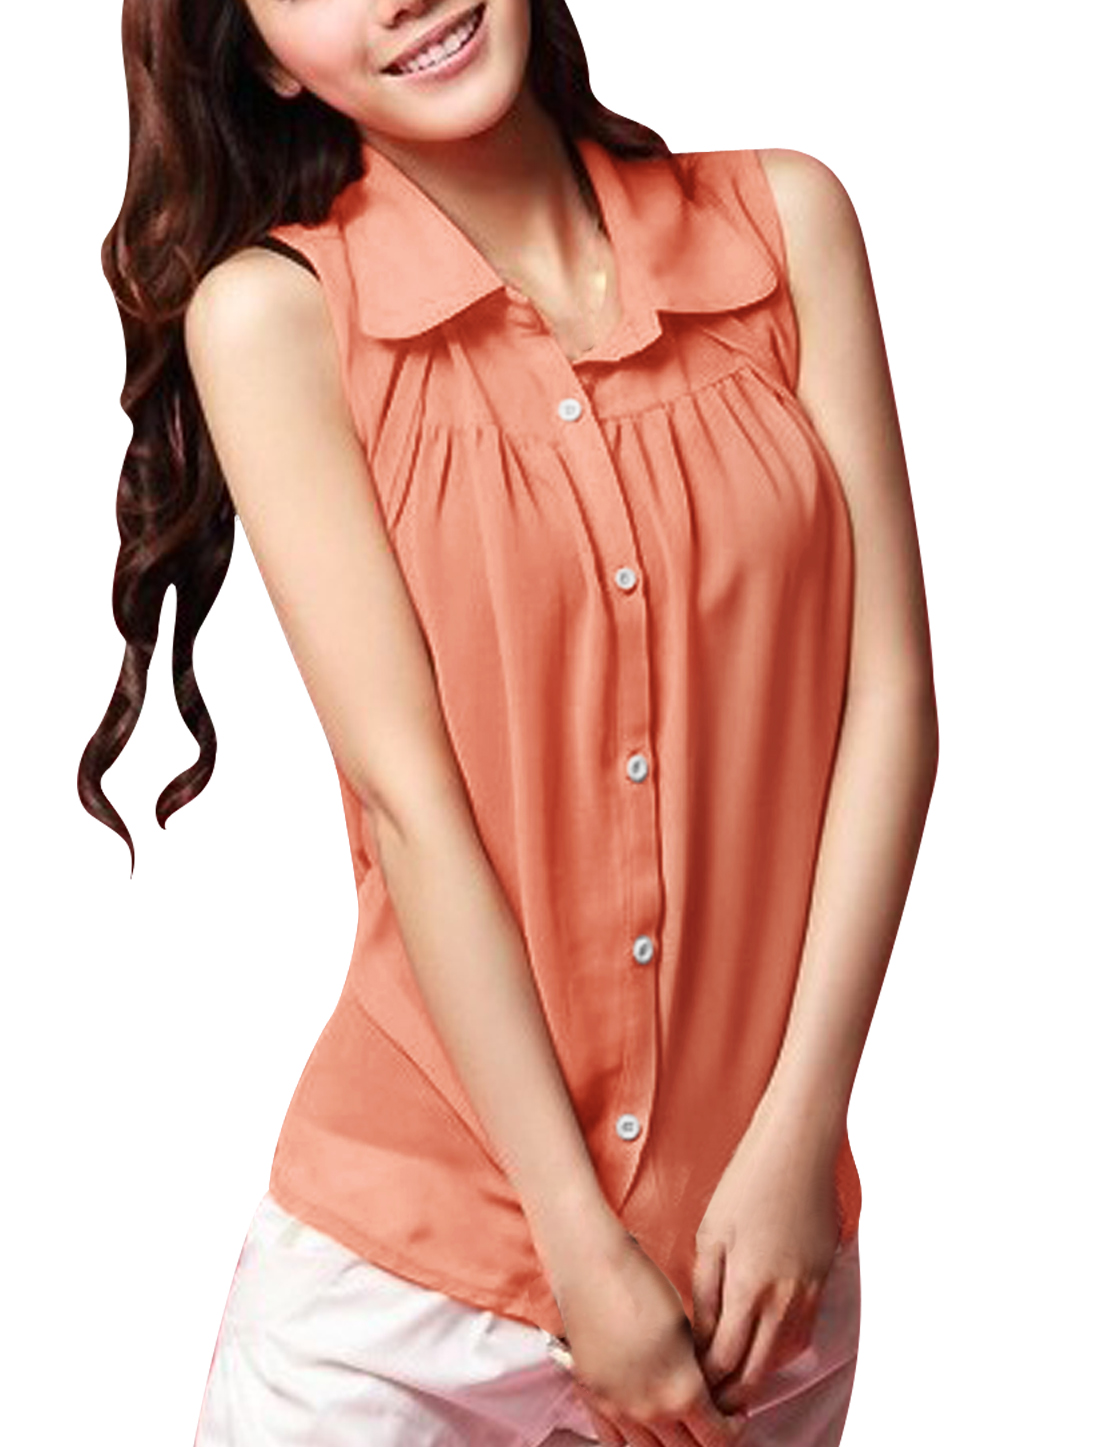 Women Point Collar Button up Semi Sheer Chiffon Blouse Salmon Pink XS